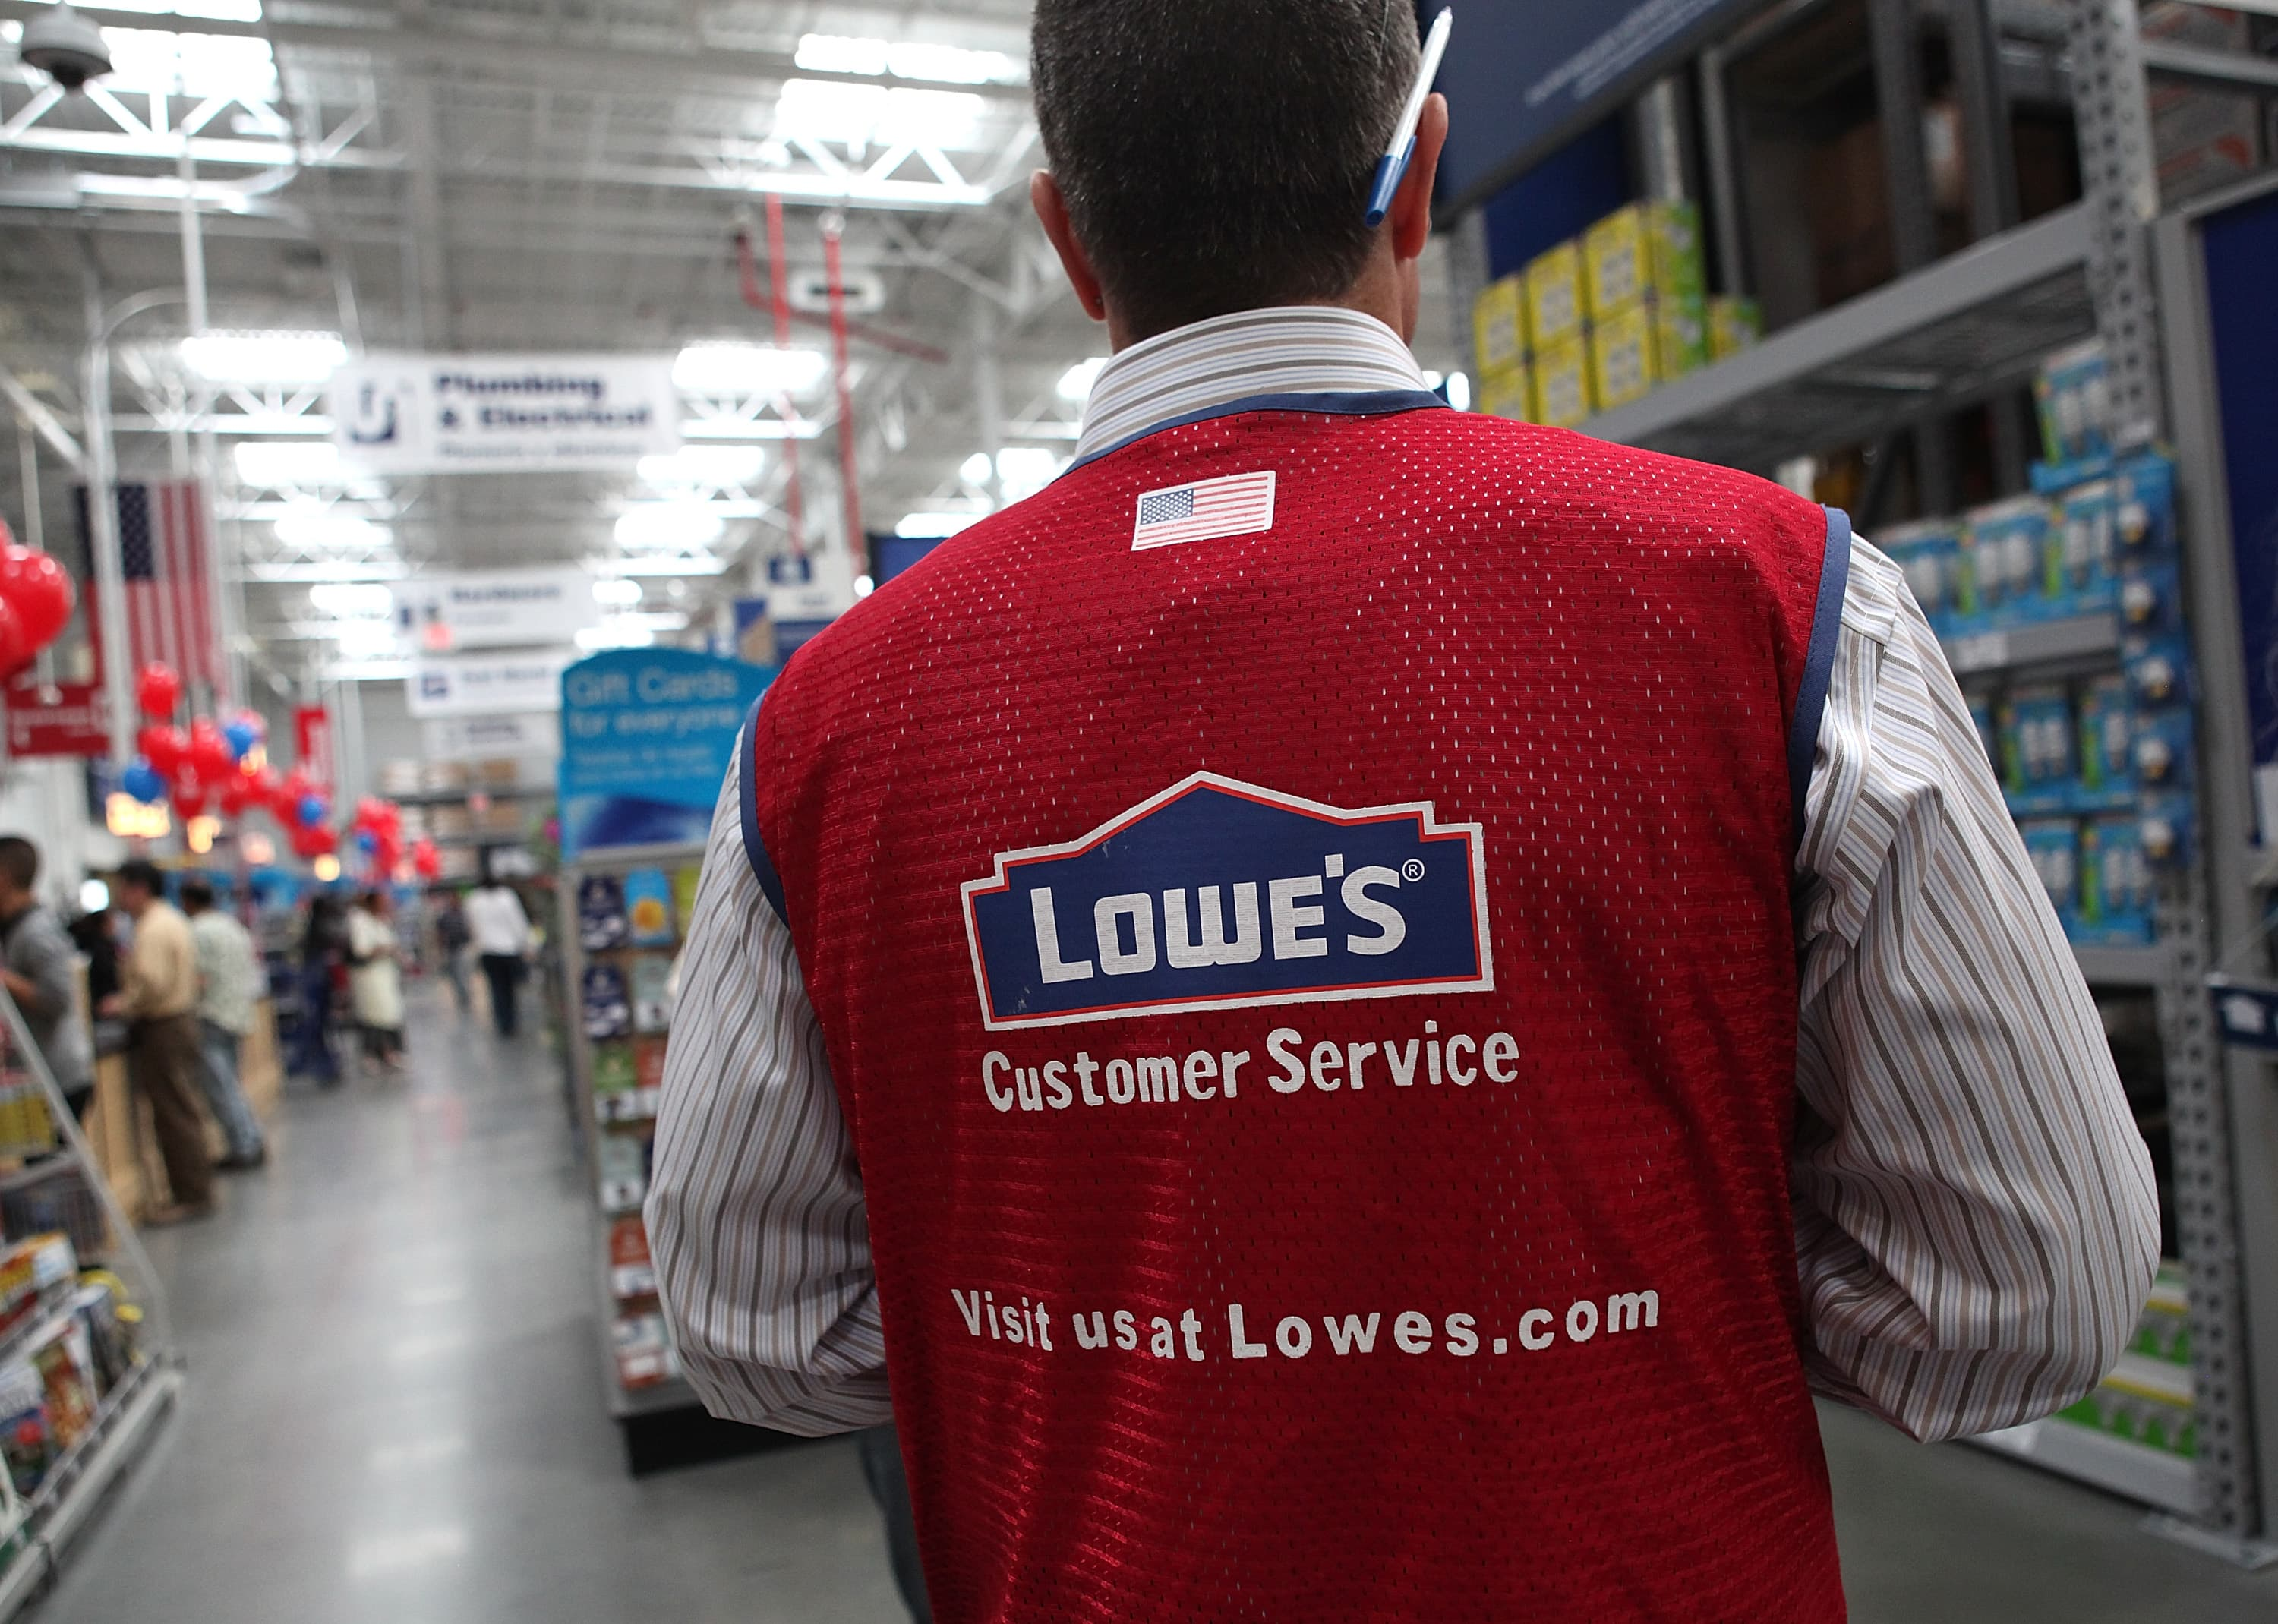 Lowes Stock Quote Lowe's Stock Falls On Earnings Sales Miss